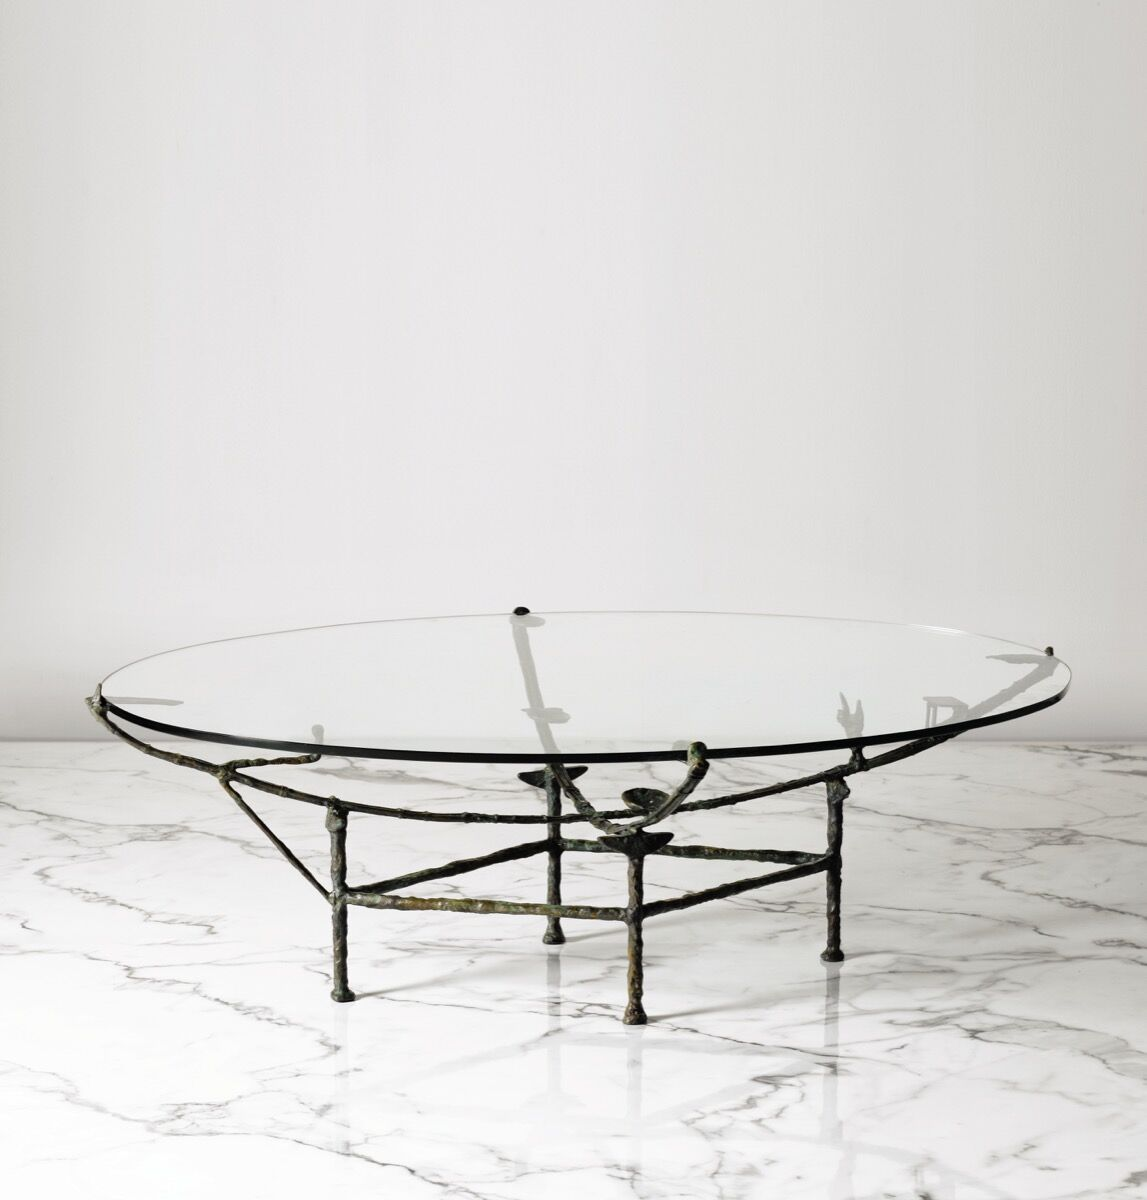 Diego Giacometti, Table Carcasse à la chauve-souris, circa 1970. Image courtesy of Sotheby's – Art Digital Studio.